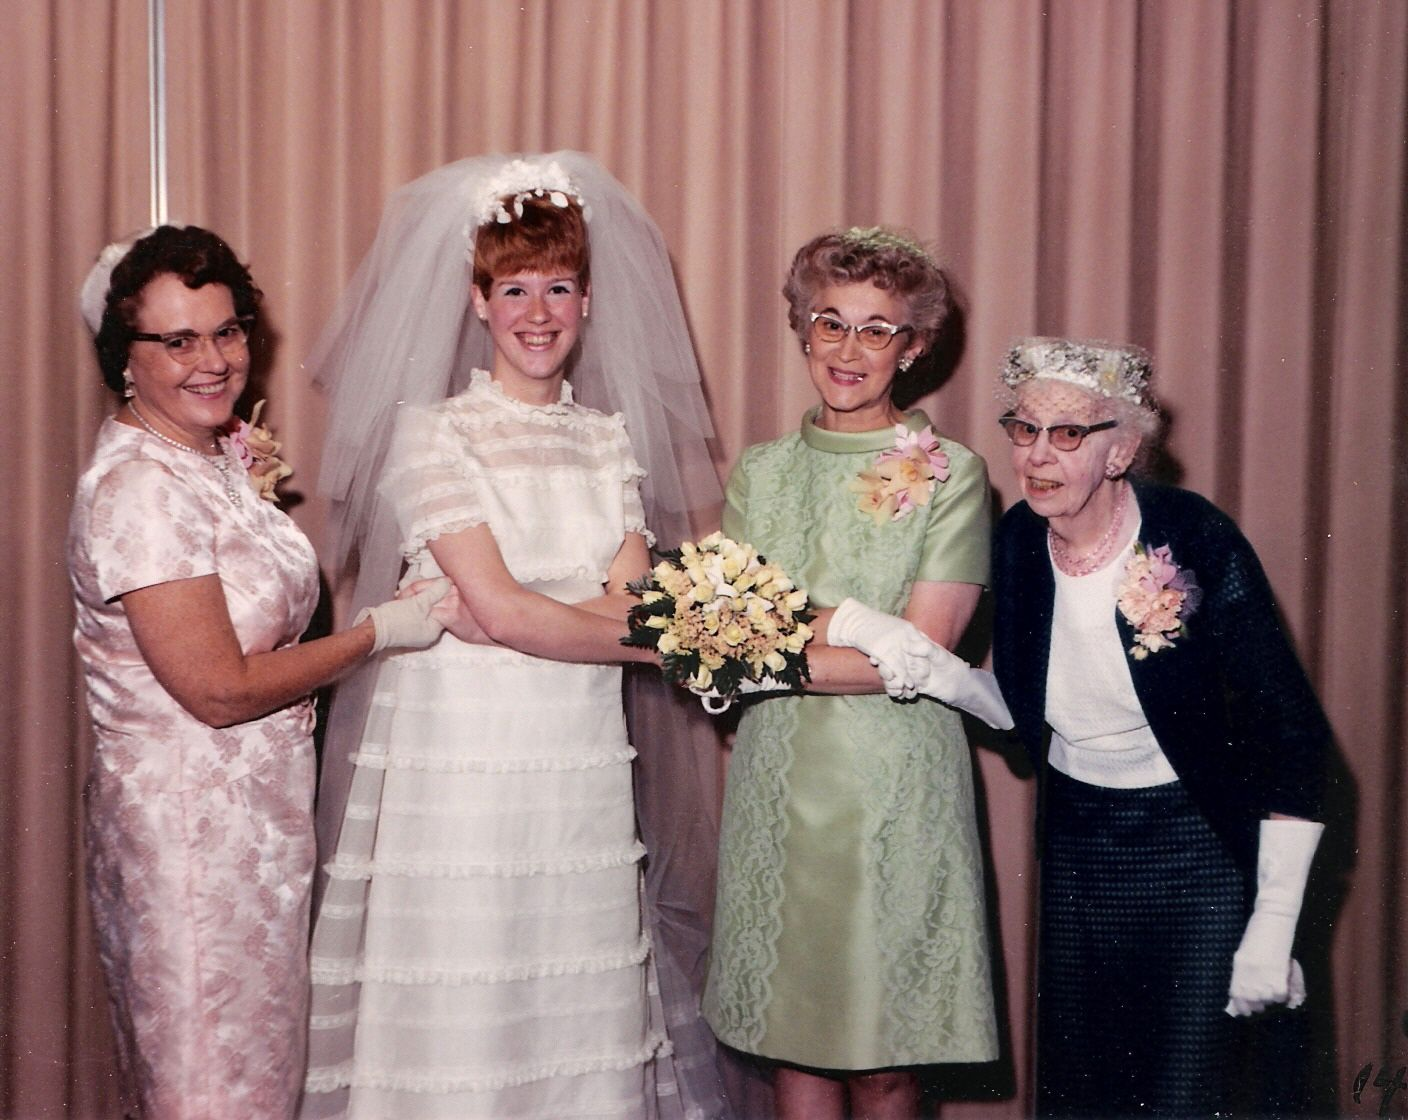 Real Retro Weddings: 1969 Wedding Snapshot. Bride And Family, 60s